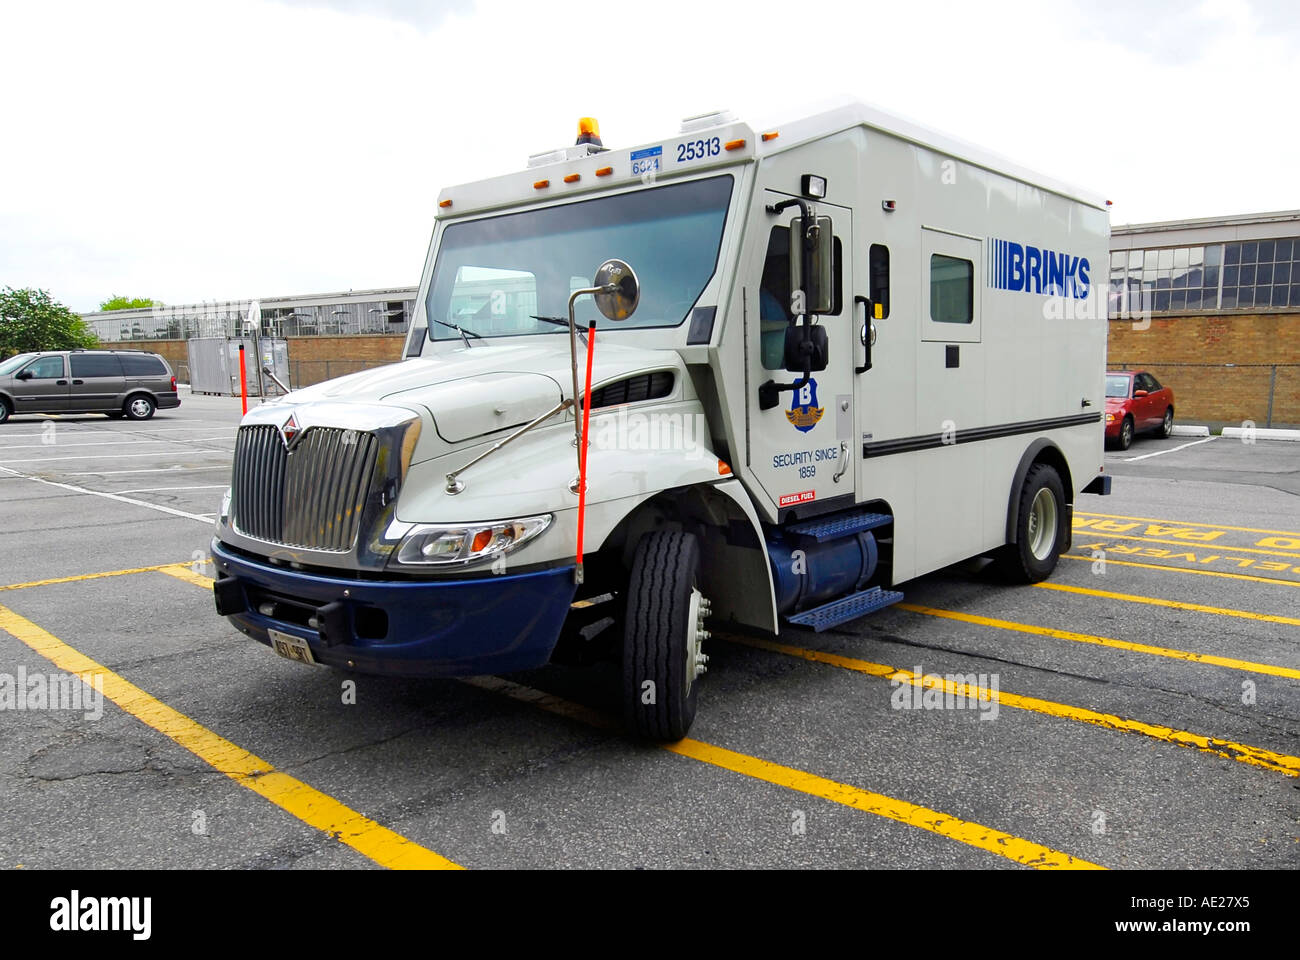 Brinks Armored Truck picks up and delivers cash money to banks and ...